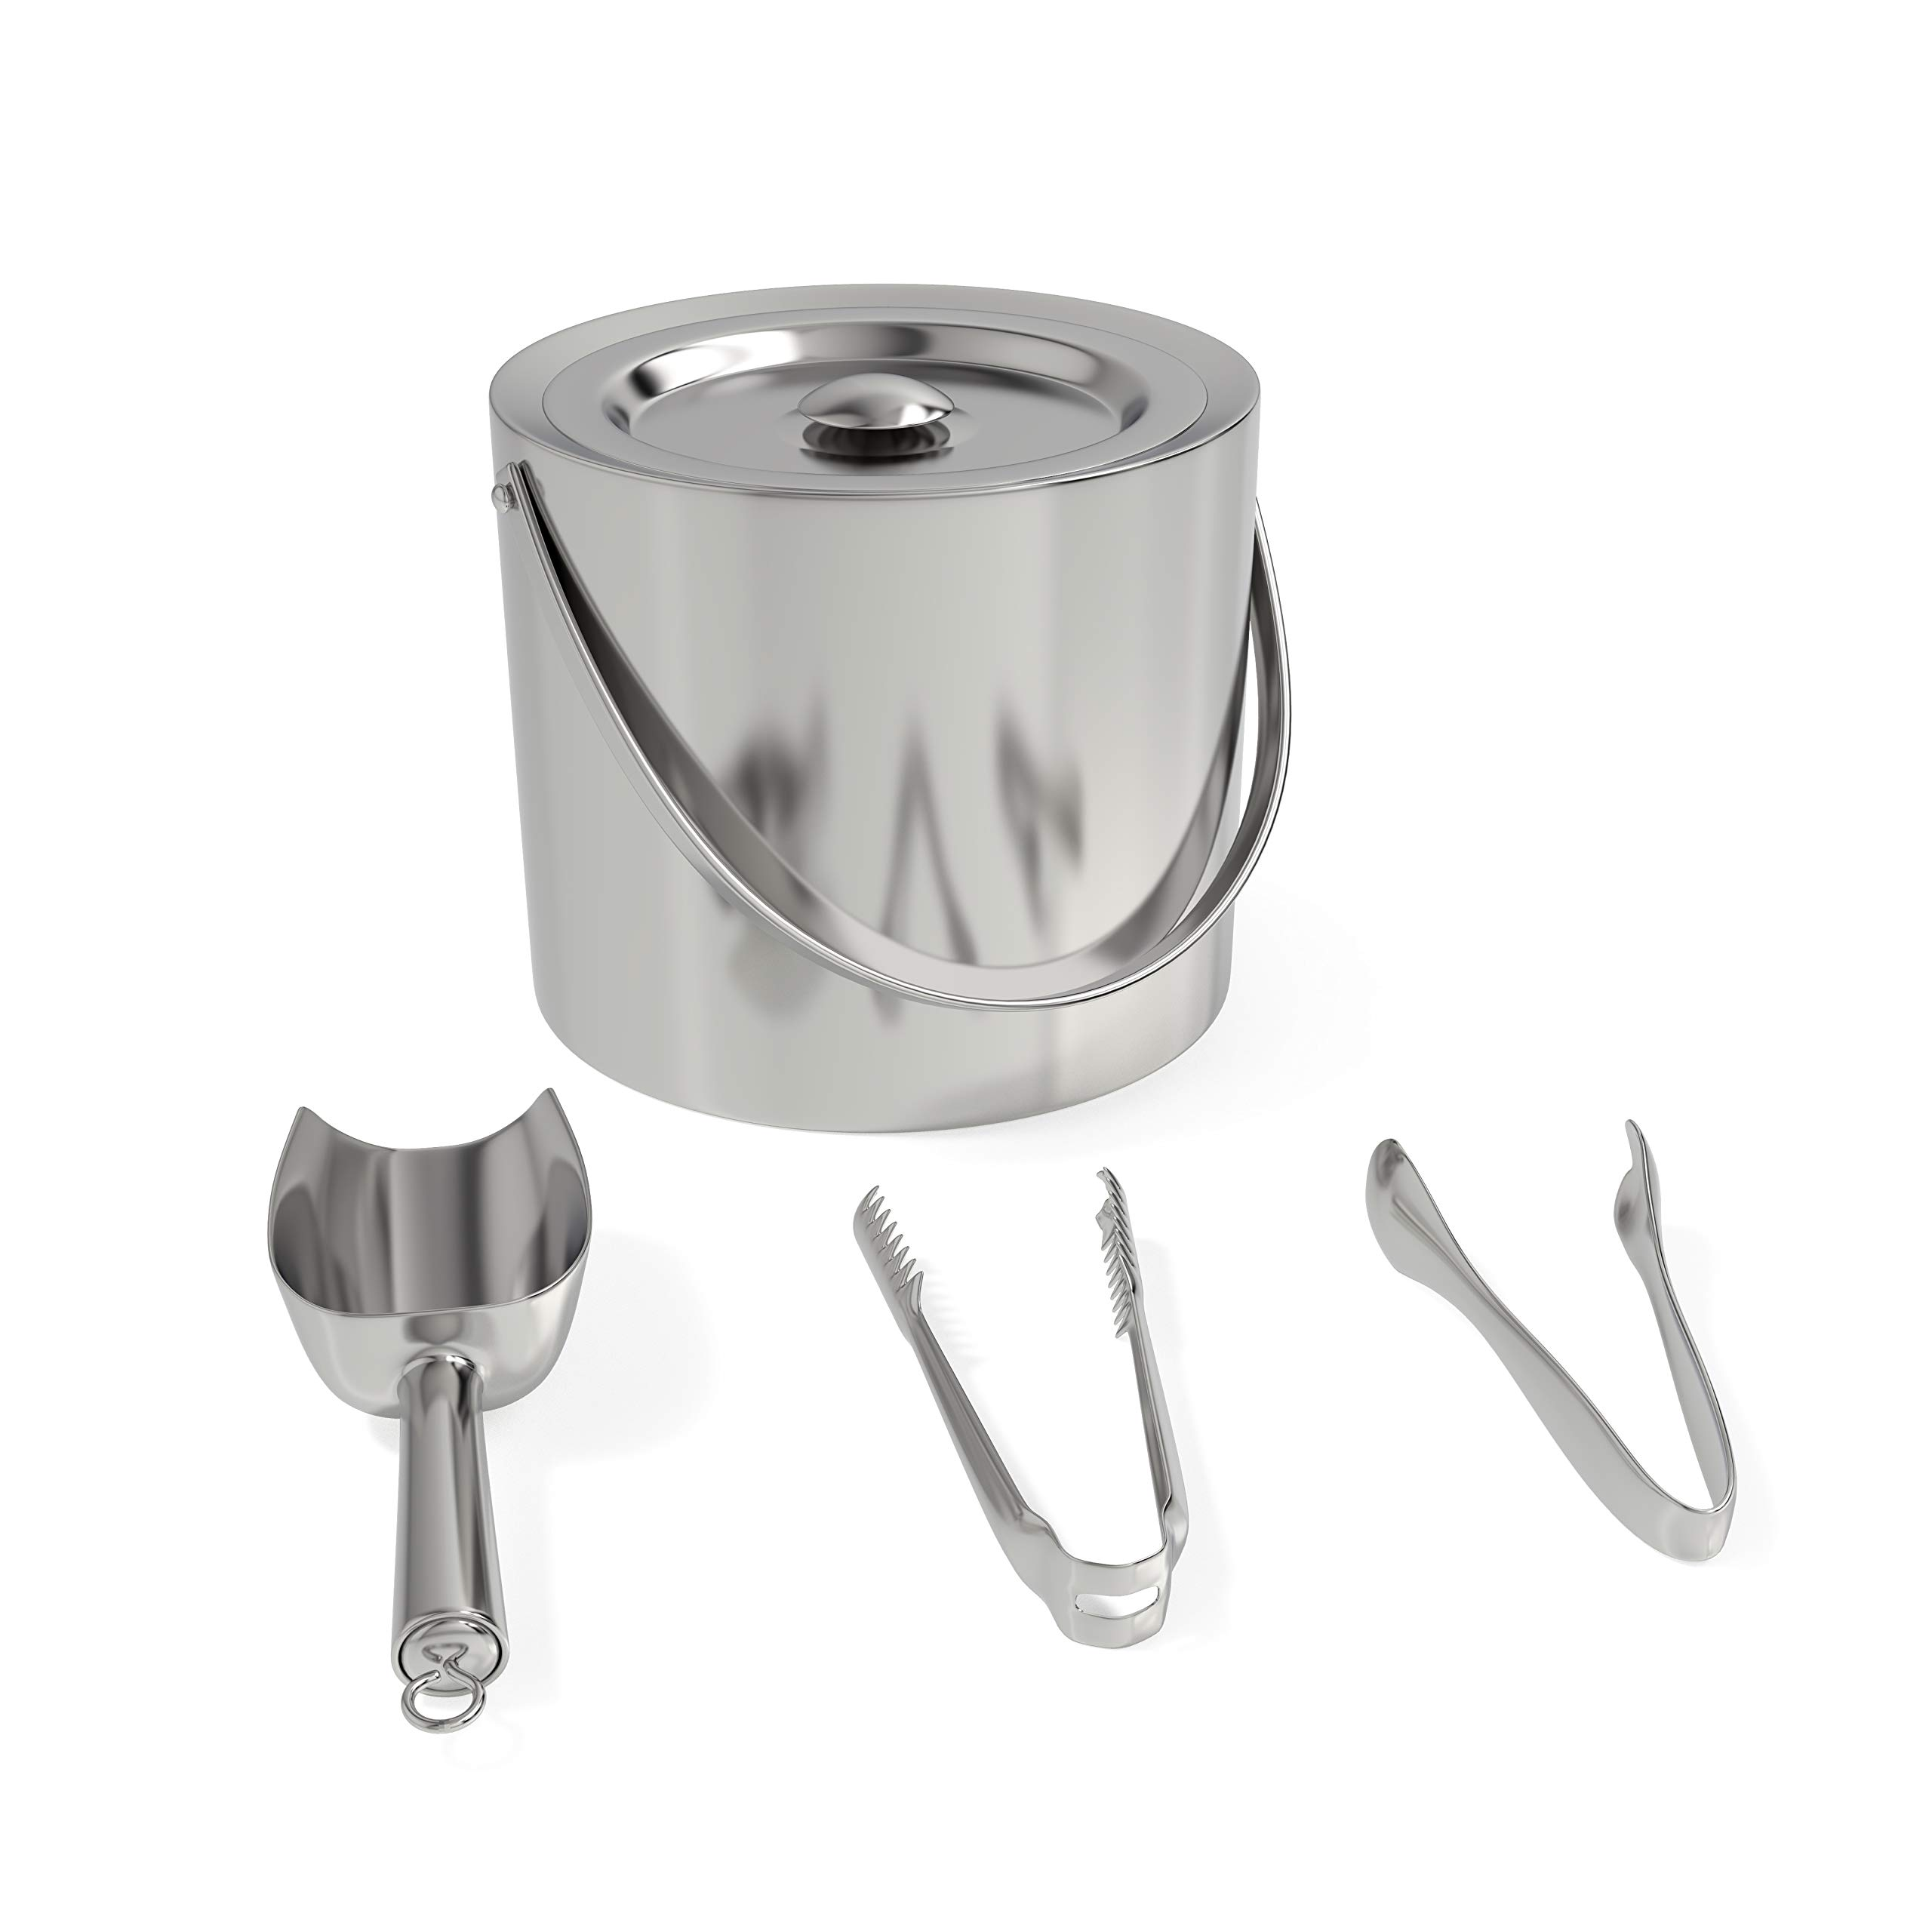 Classy Pantry Stainless Steel Ice Bucket with Tongs and a Scoop by Classy Pantry